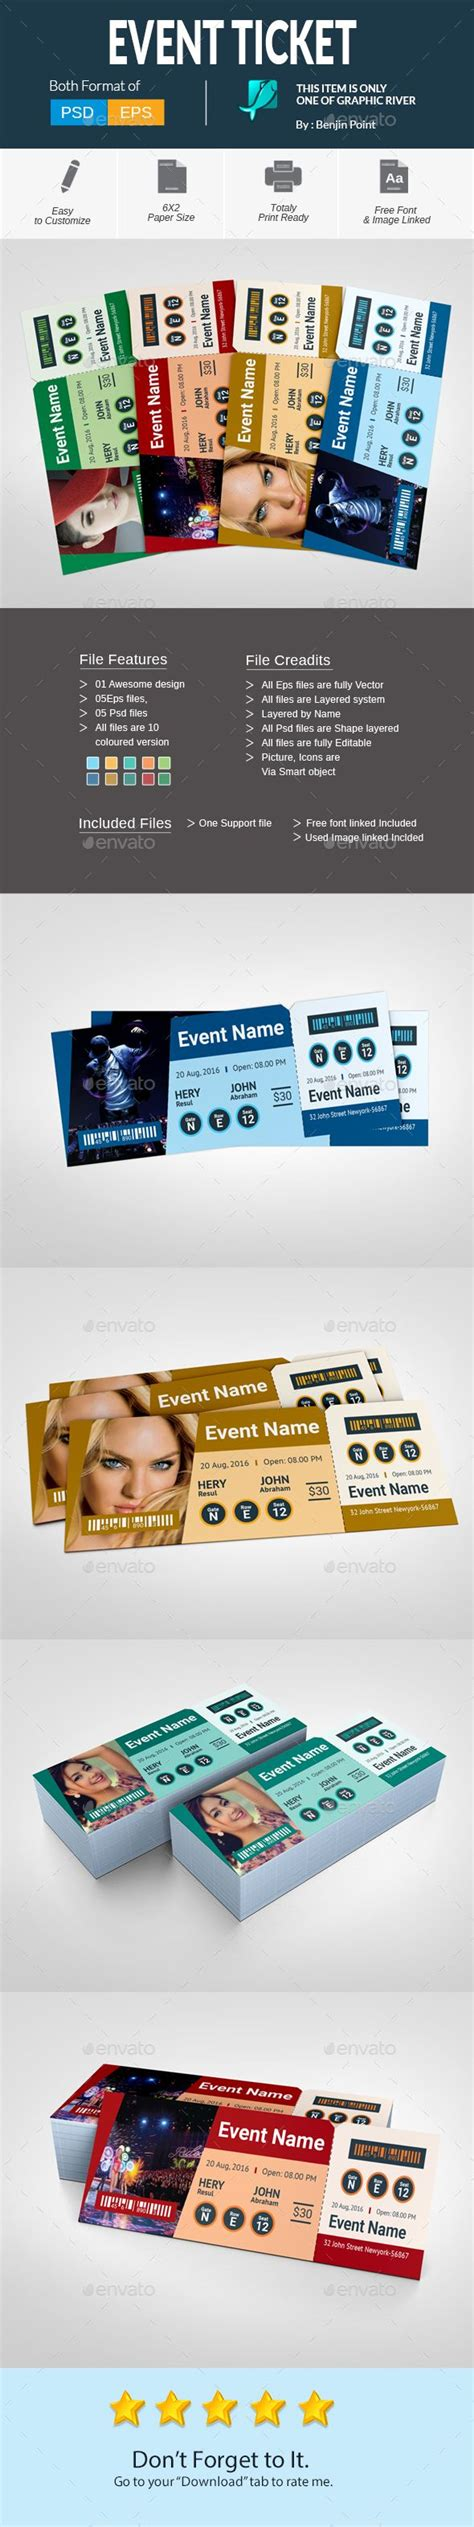 25 best ideas about event ticket template on pinterest